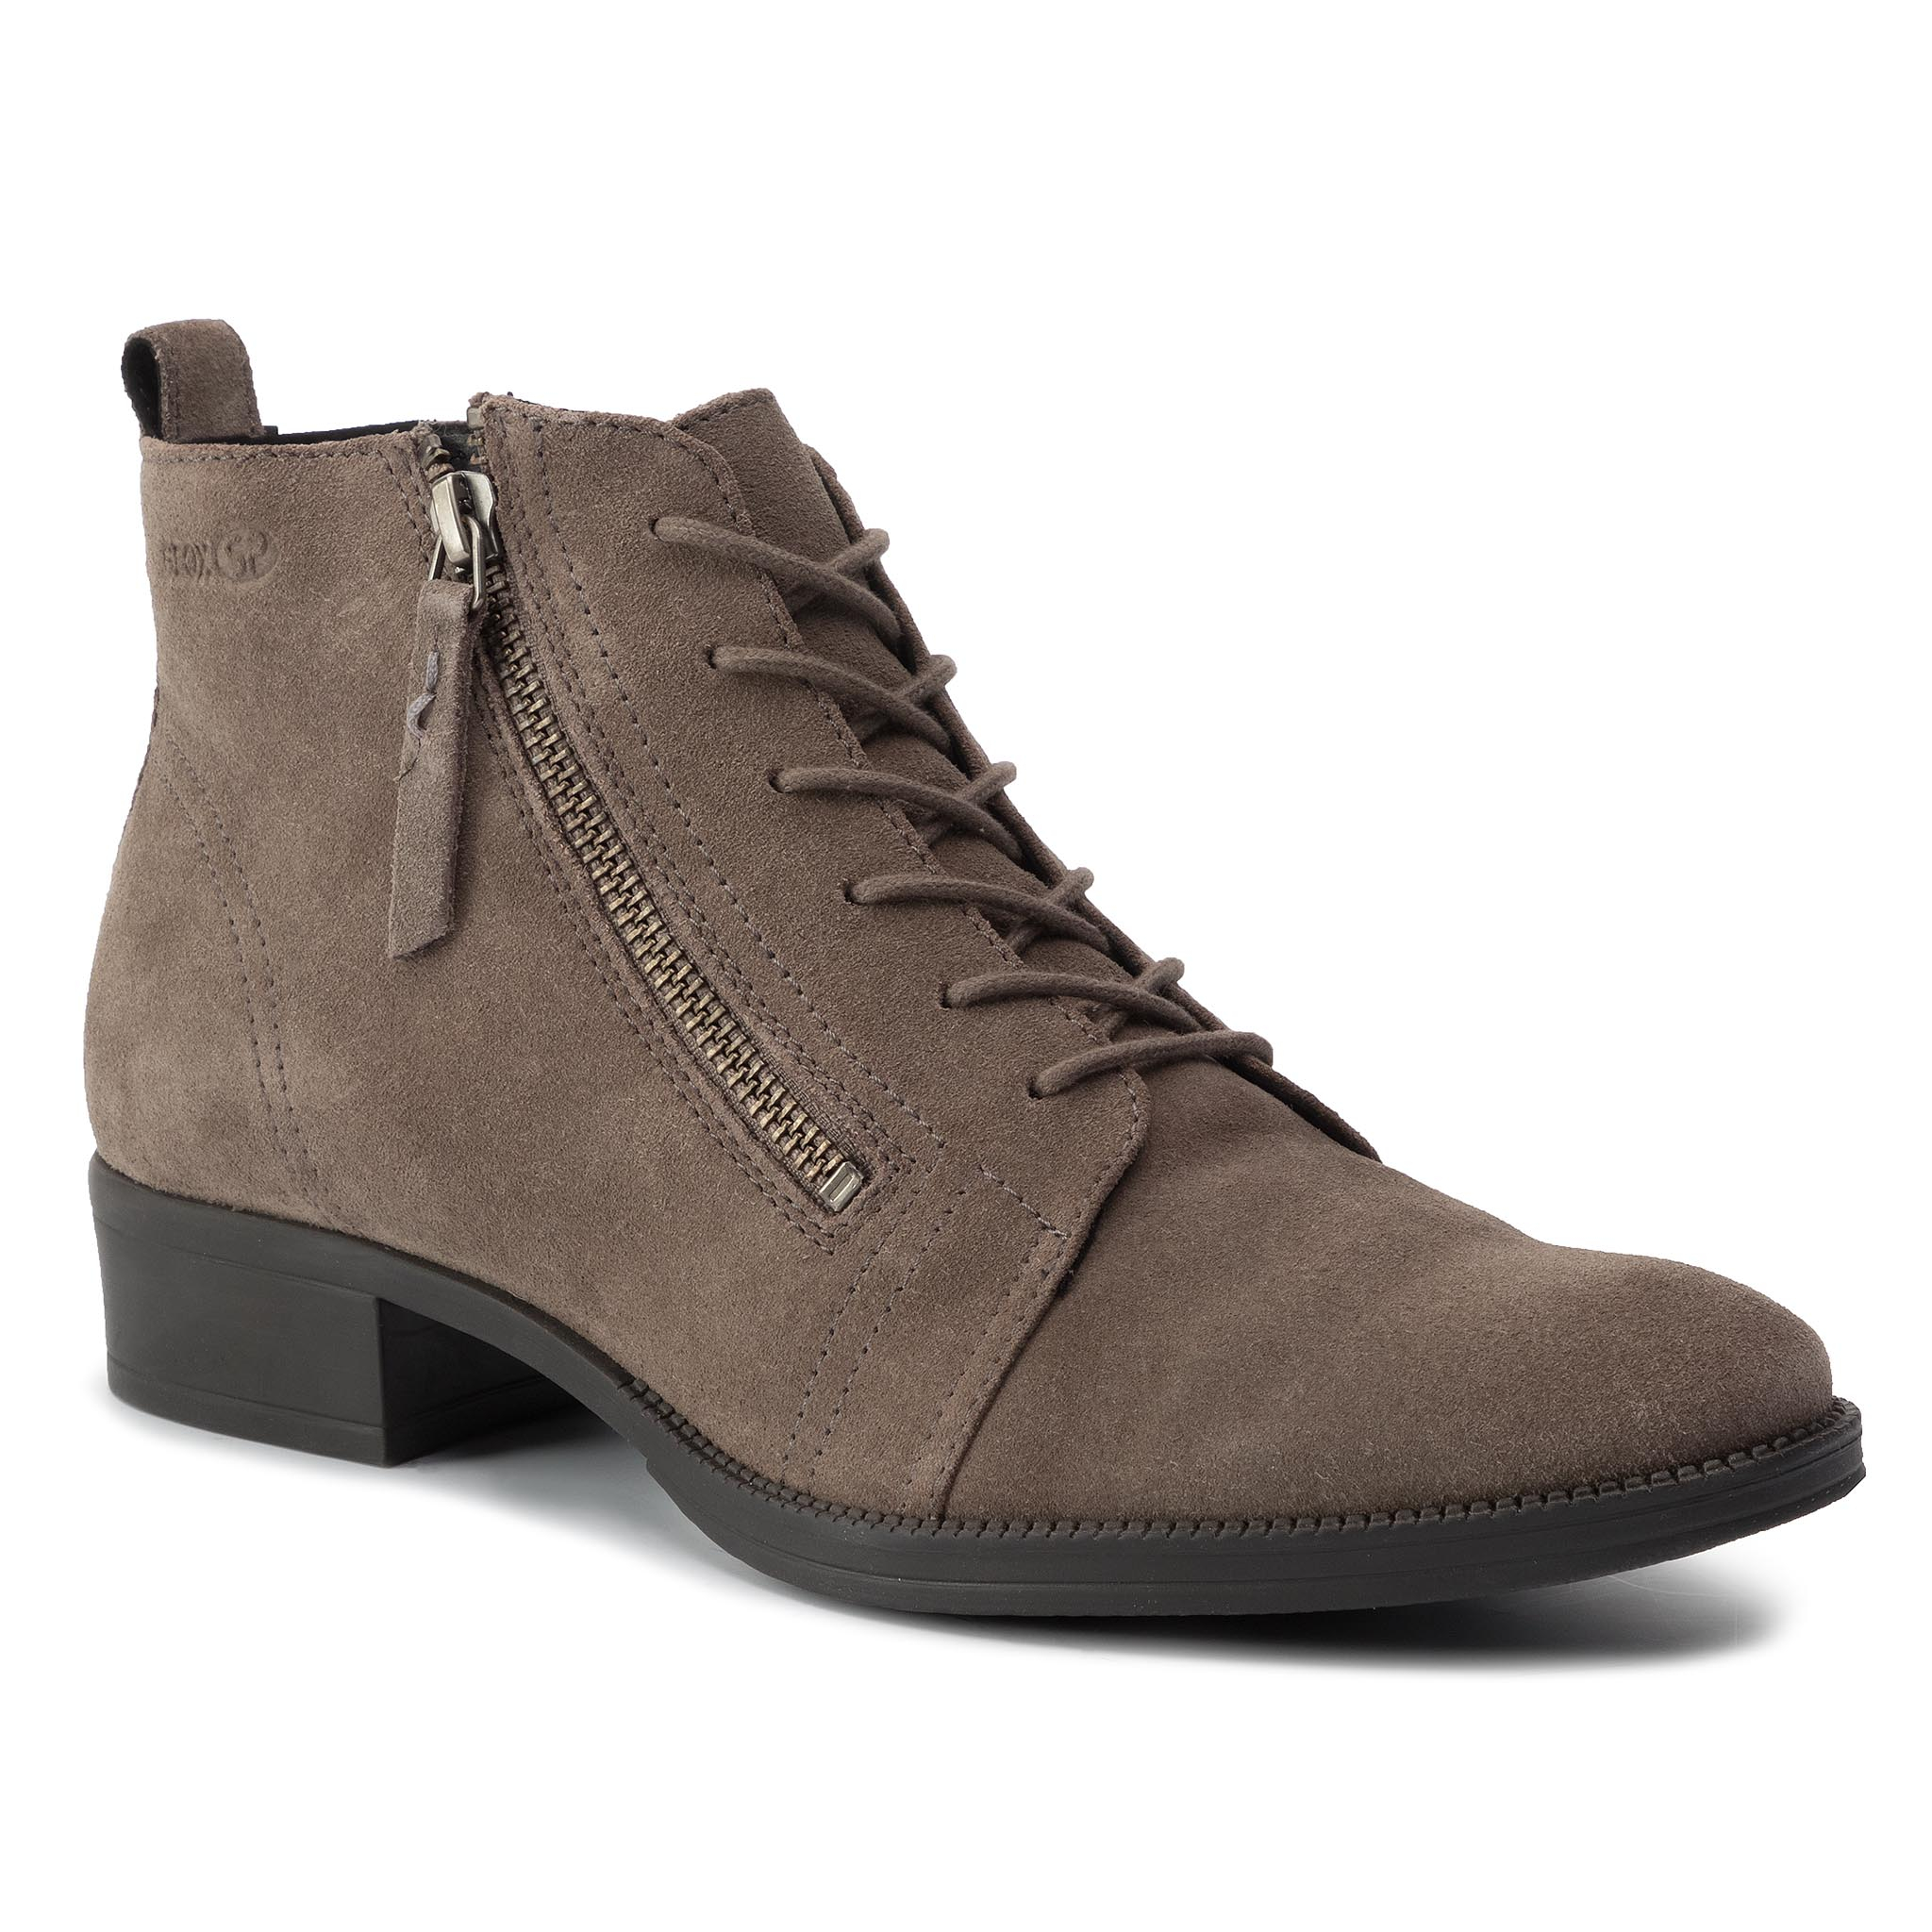 Botine GEOX - D Laceyin D D94BFD 00022 C6004 Chestnut